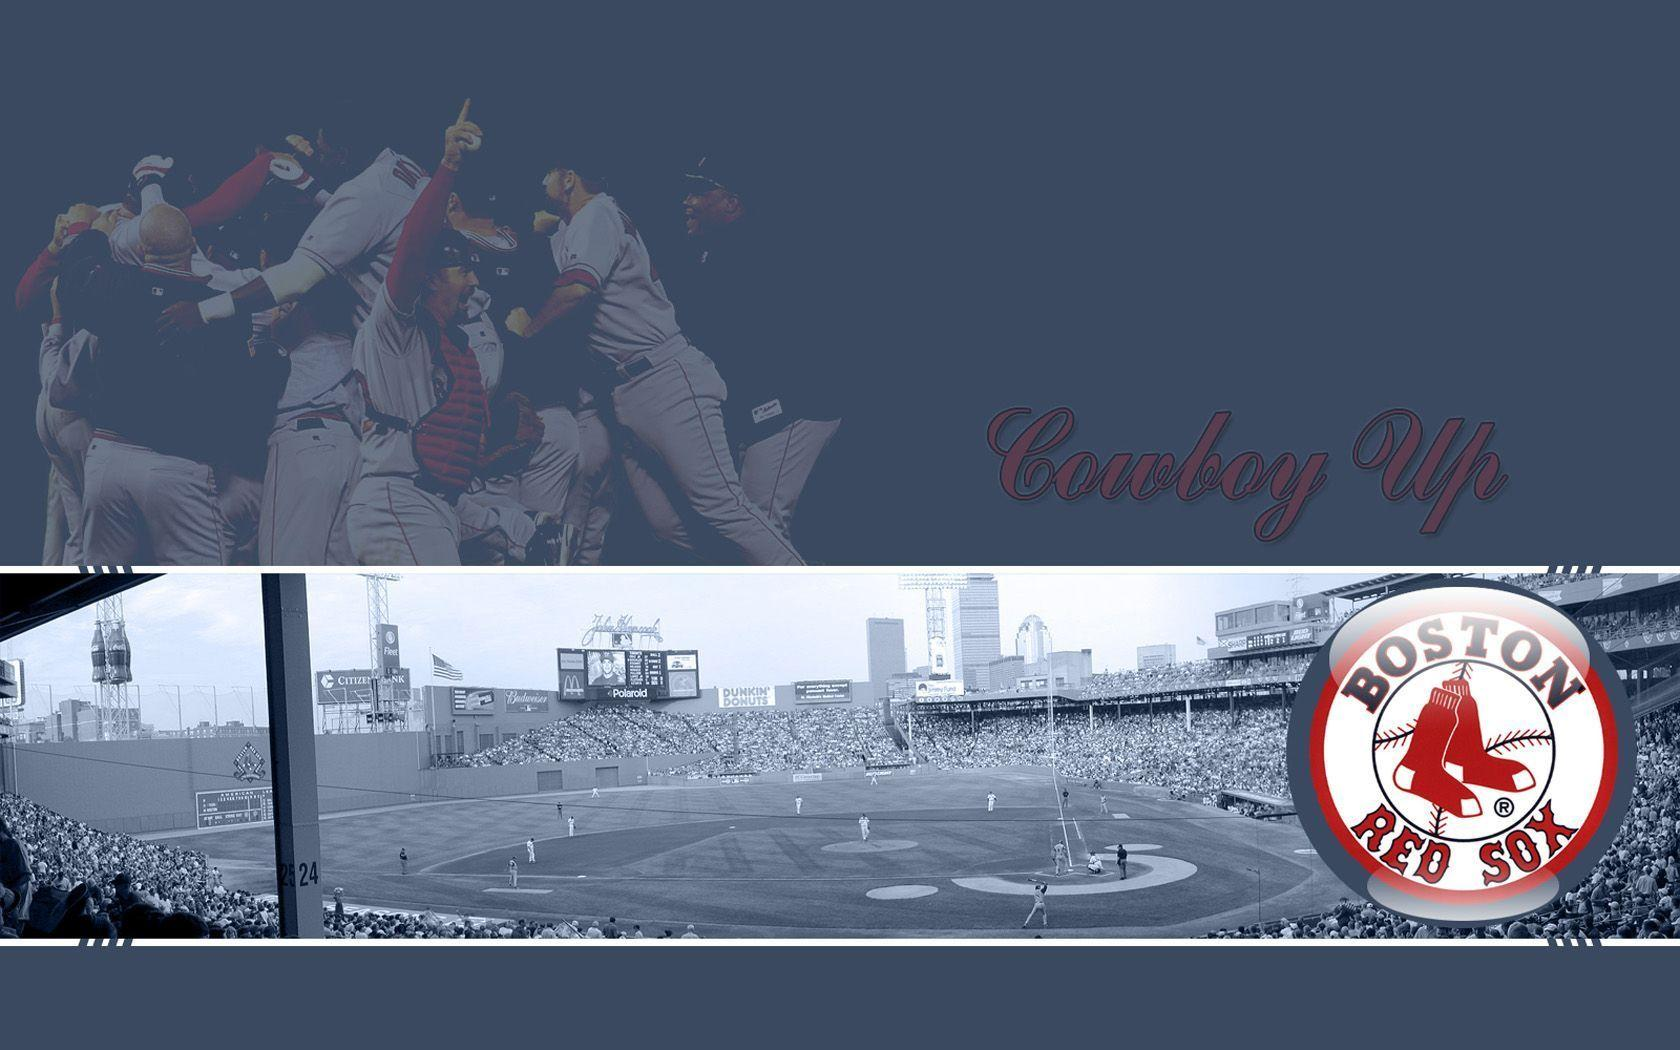 Boston Red Sox Team Stadium wallpapers